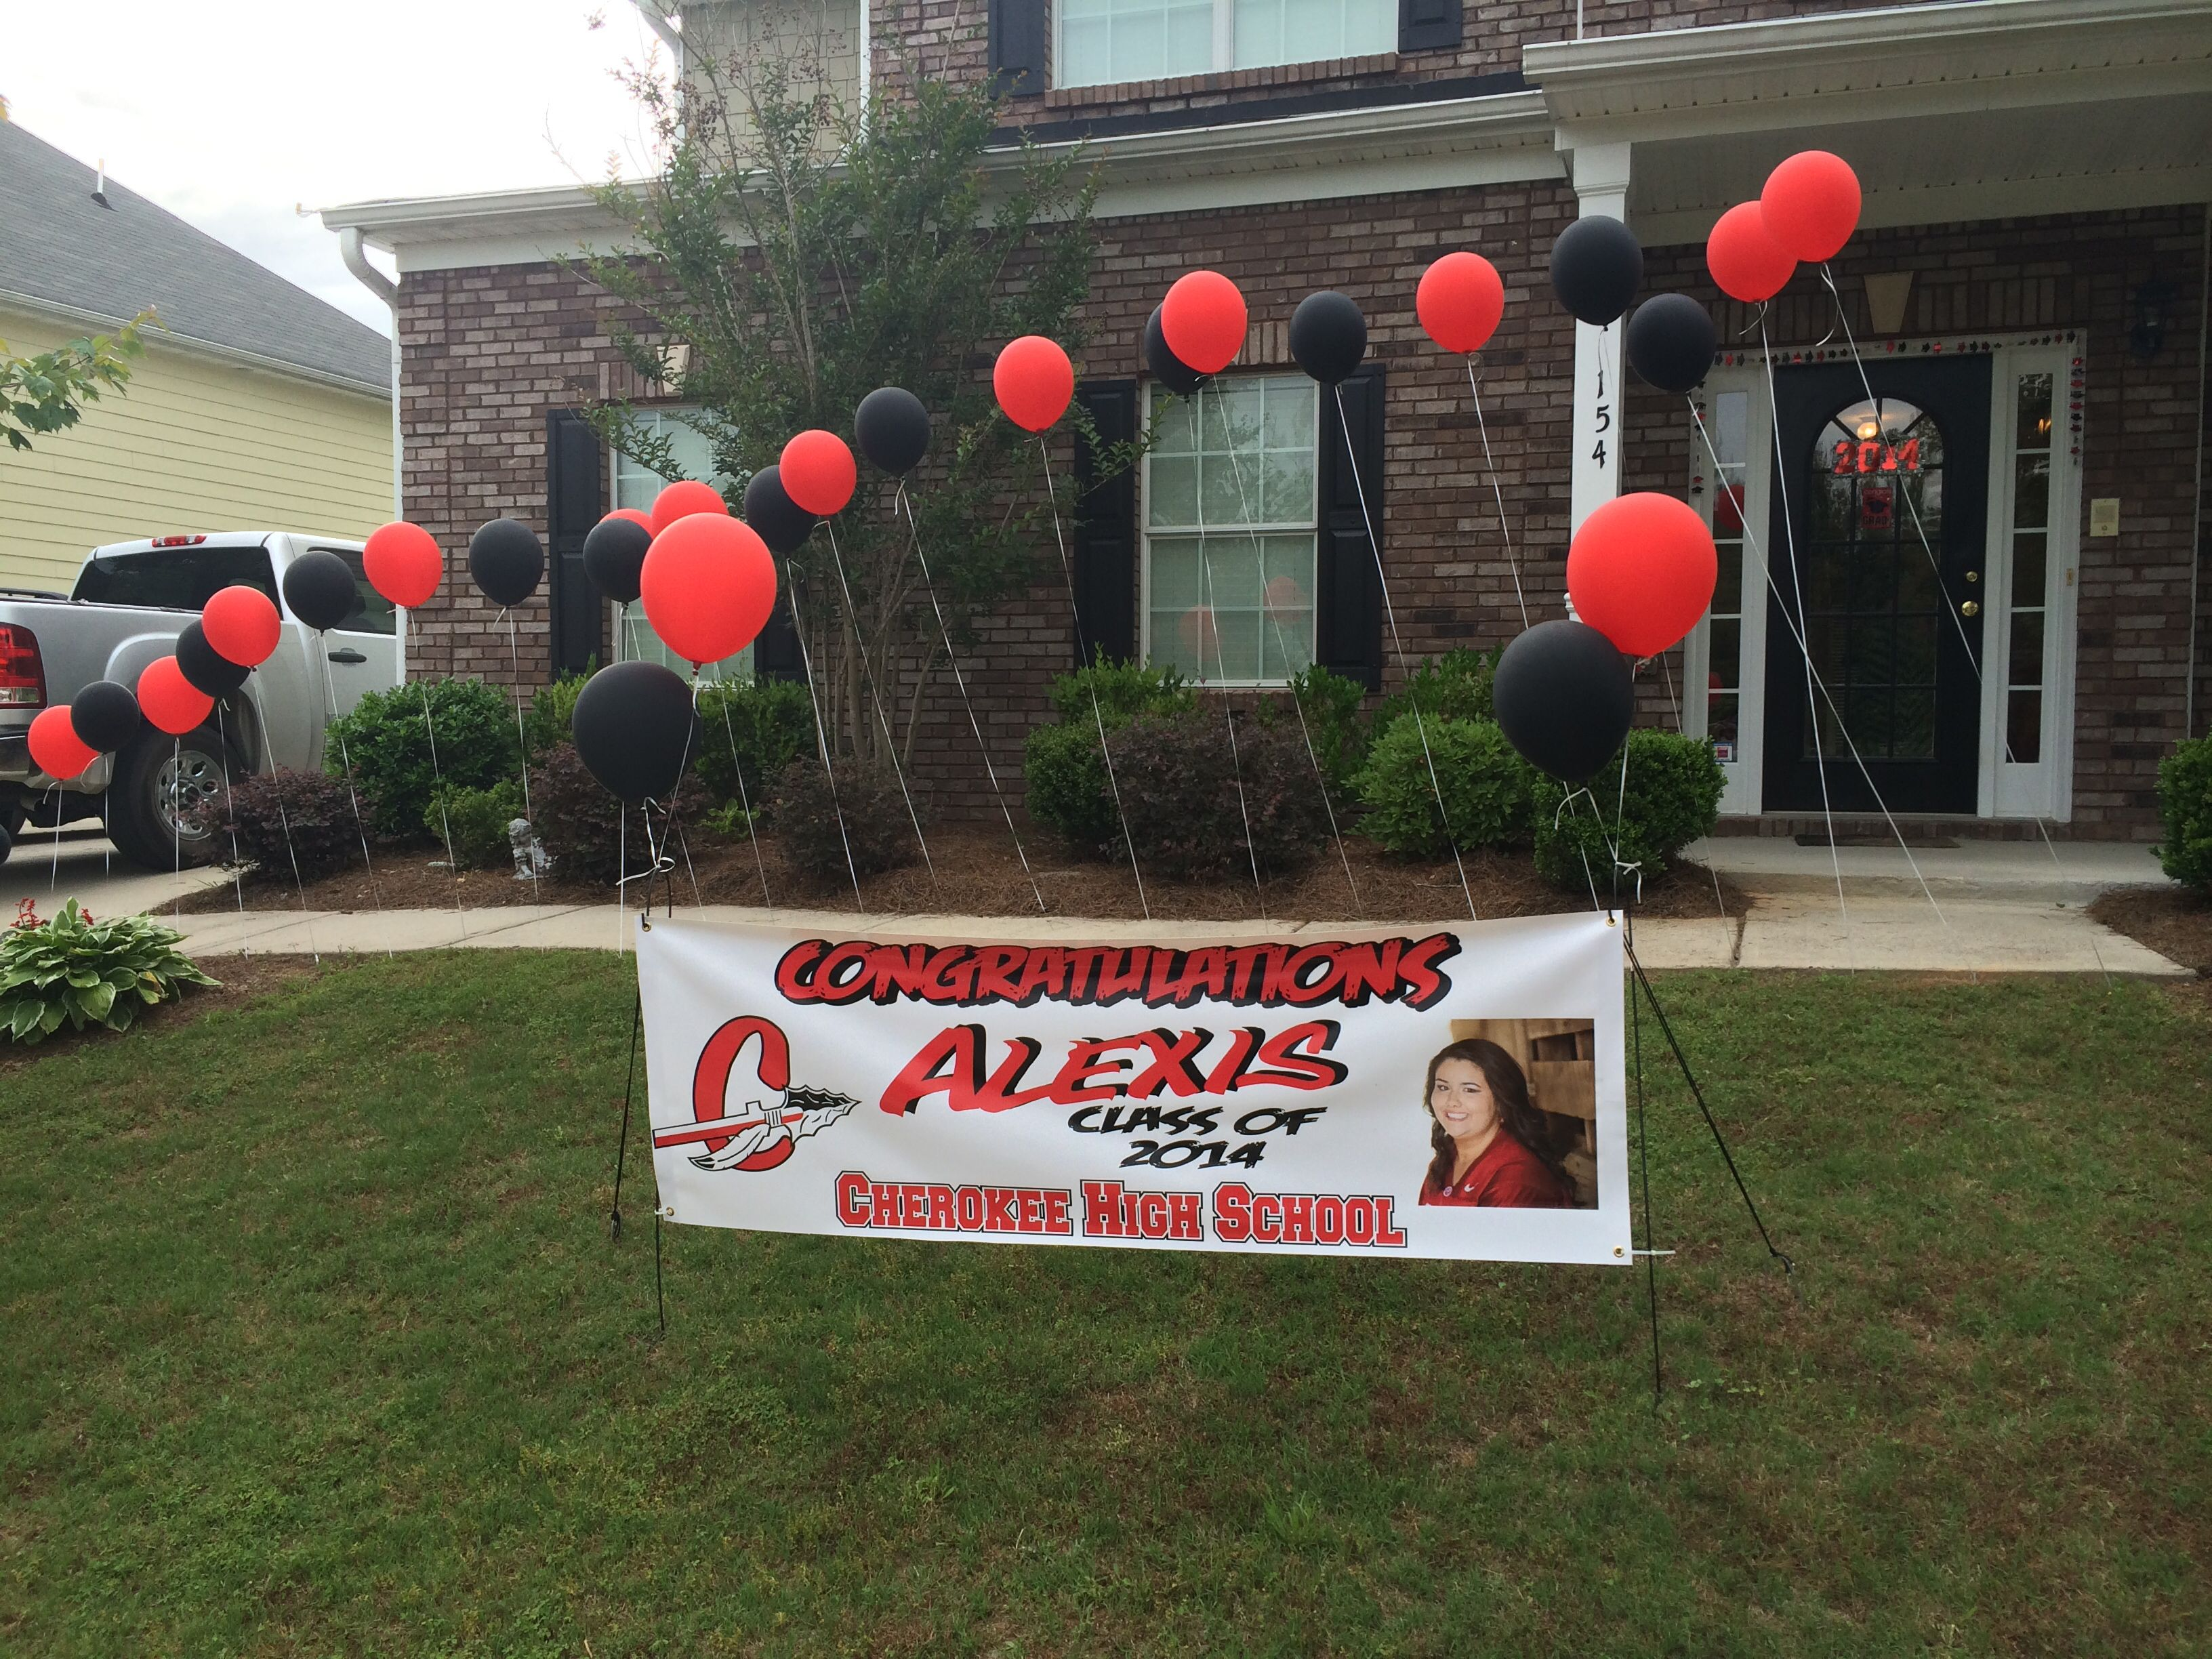 Graduation Party Front yard banner with stair step balloons